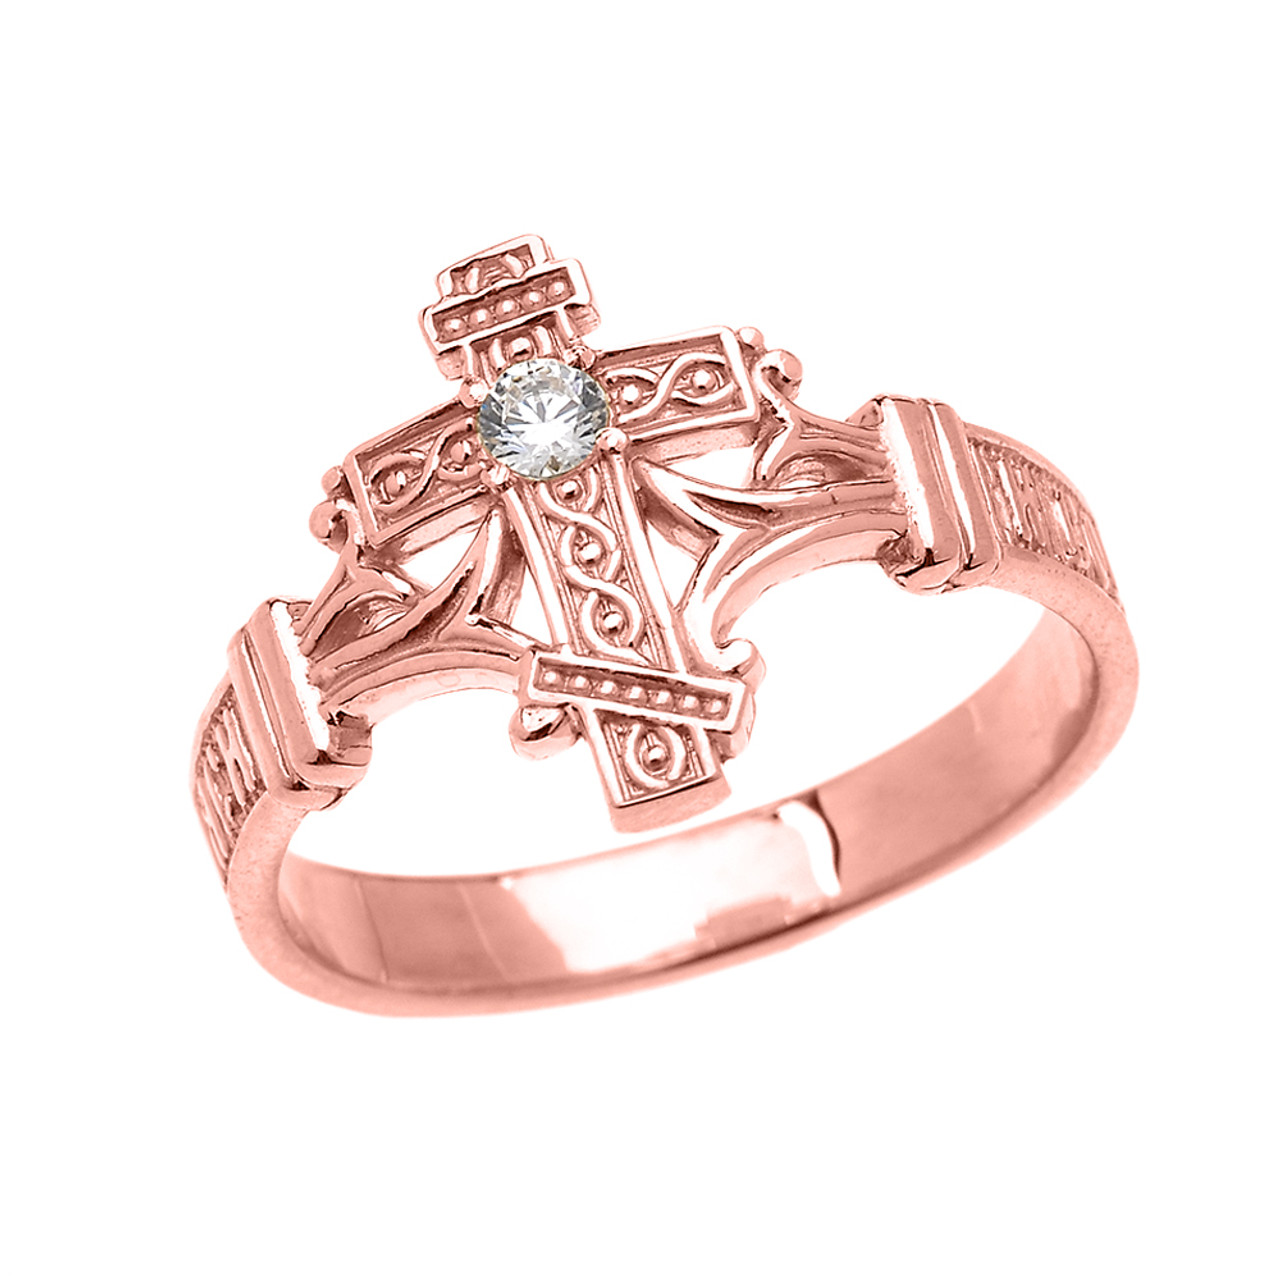 Famous Russian Wedding Ring Silver Motif - Wedding Art - magodigital ...